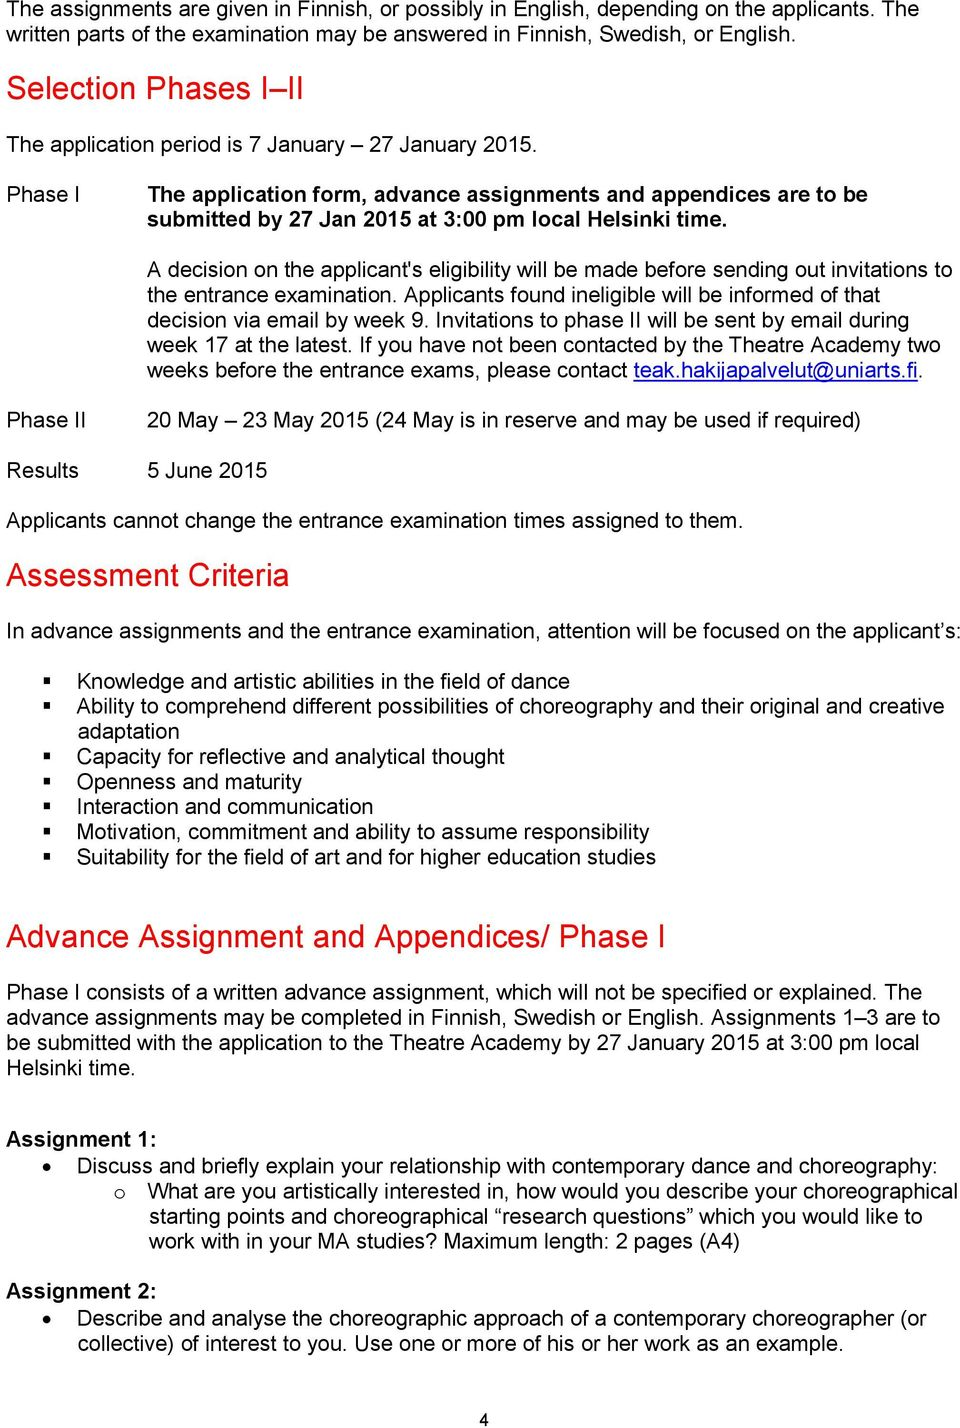 Phase I The application form, advance assignments and appendices are to be submitted by 27 Jan 2015 at 3:00 pm local Helsinki time.